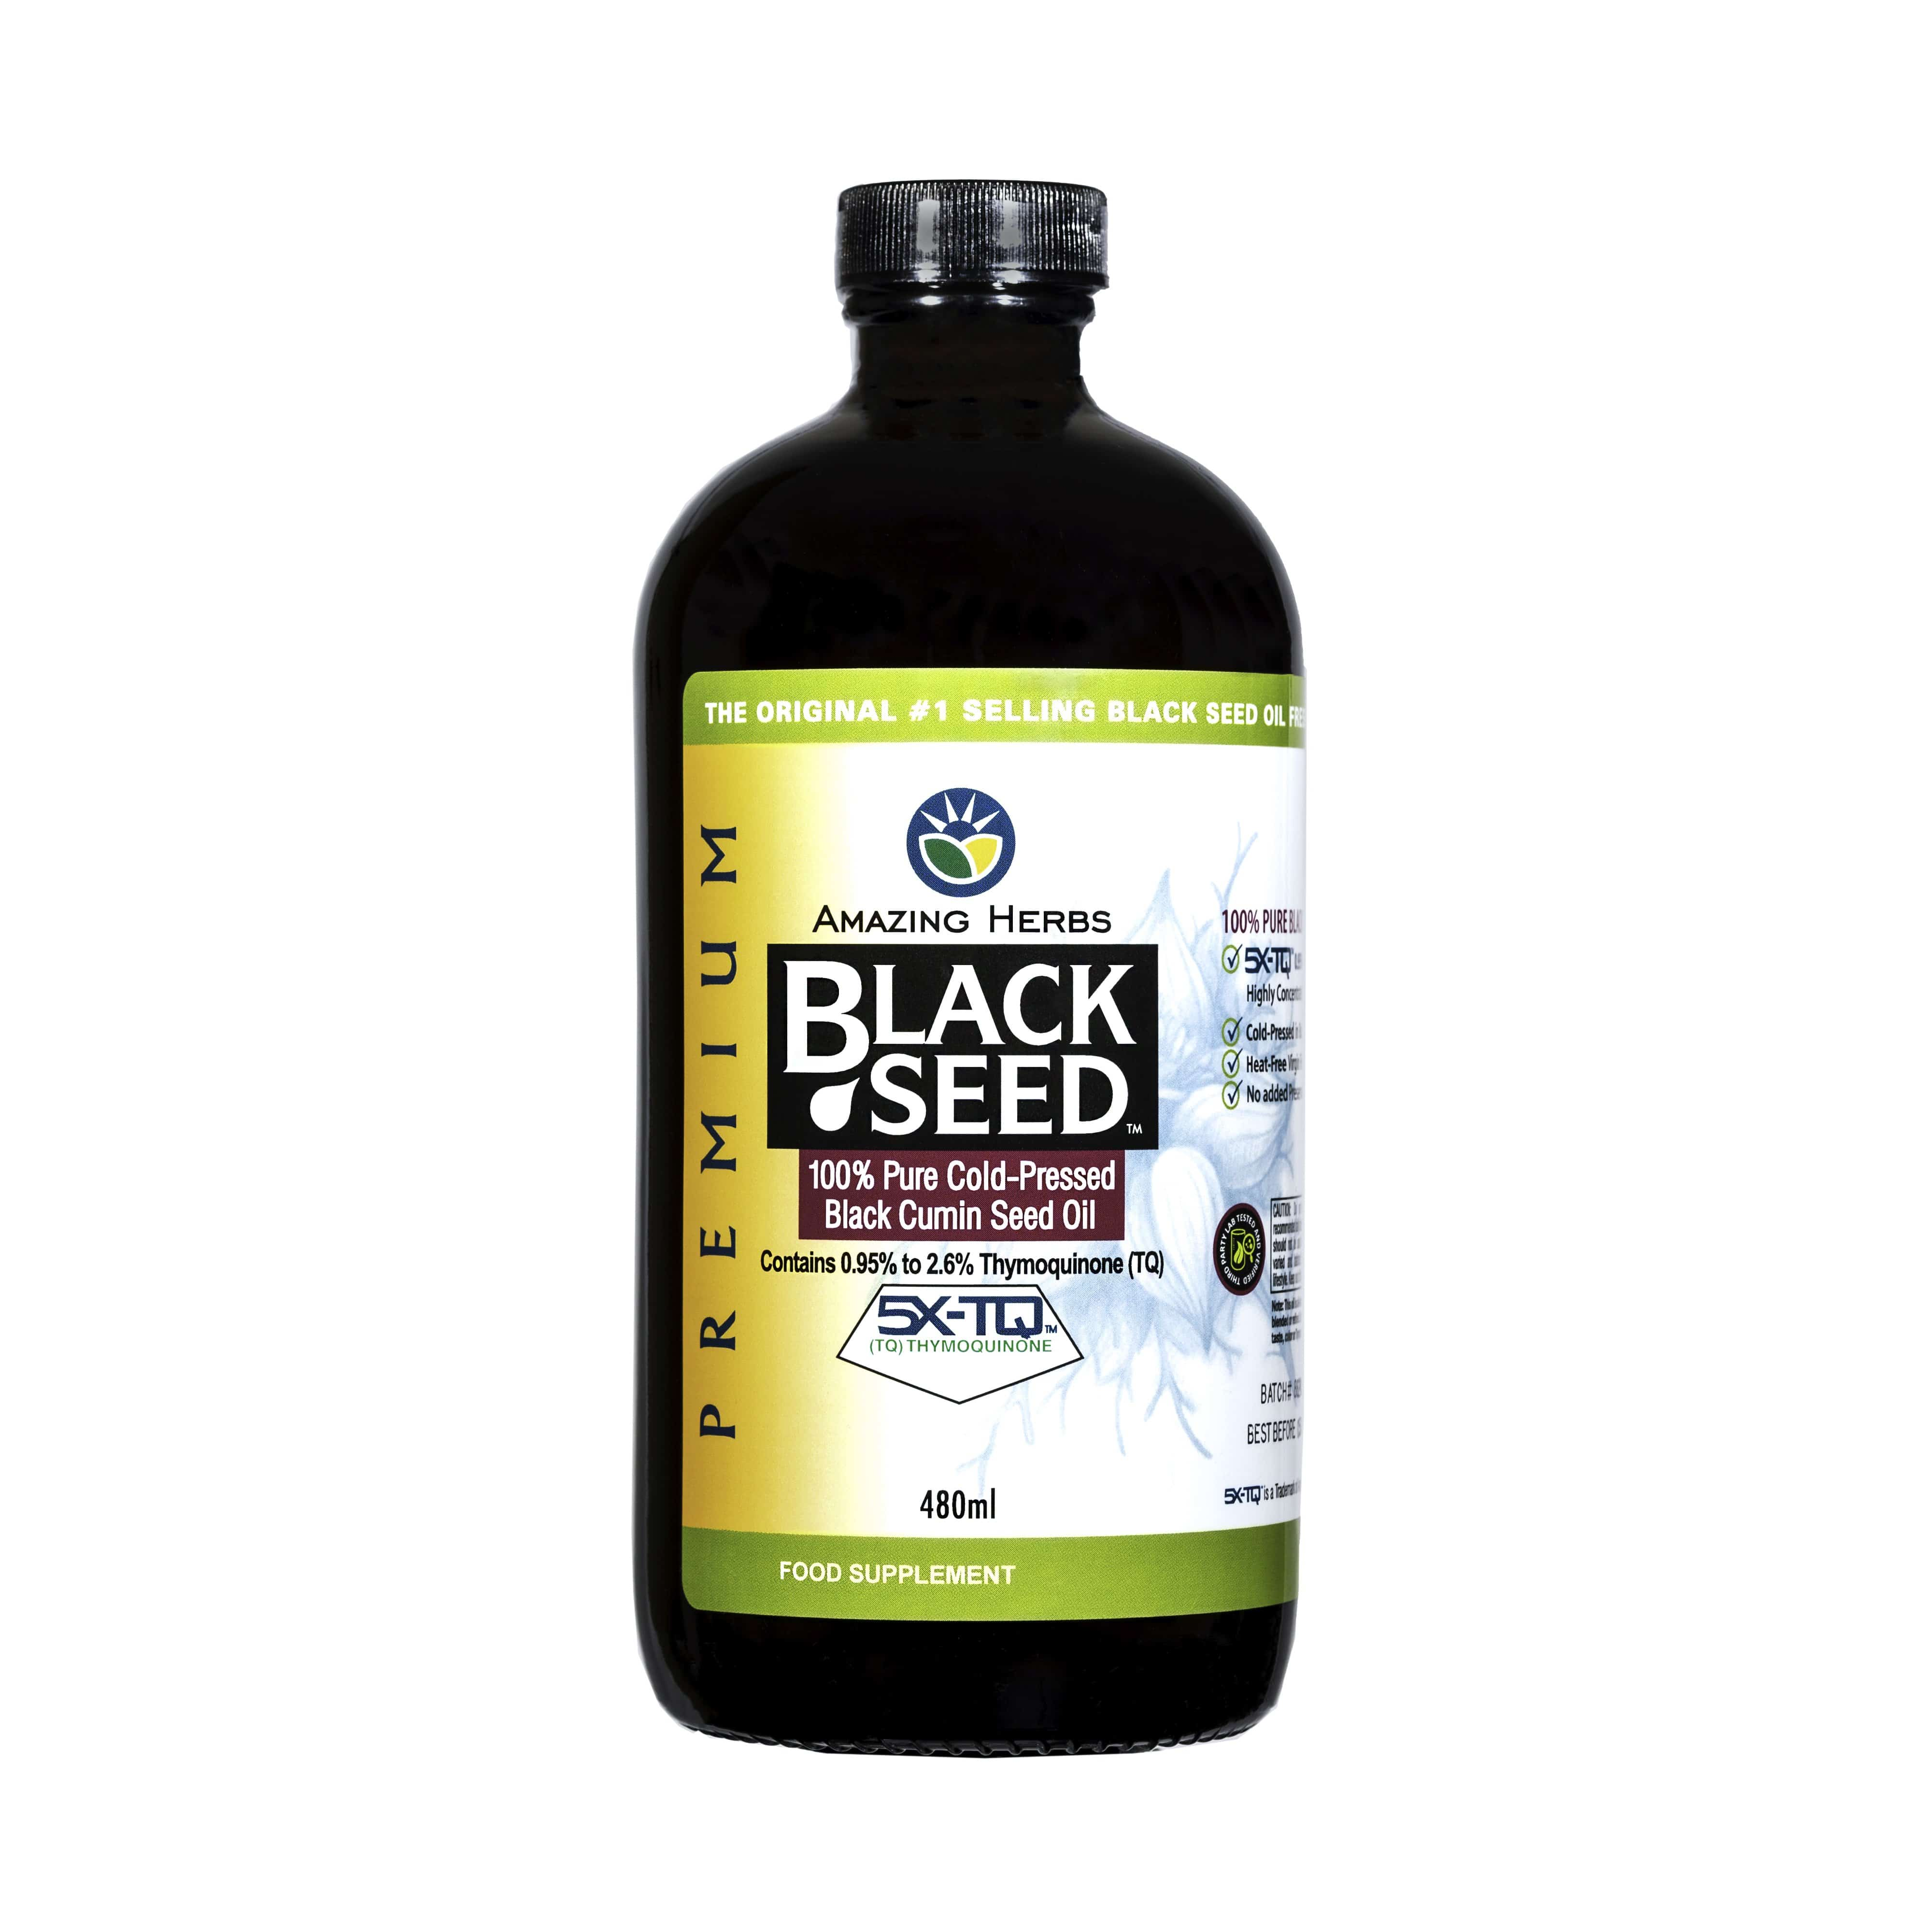 Amazing Herbs UK Amazing Herbs Premium 100% Pure Cold-Pressed Black Cumin Seed Oil, 480ml